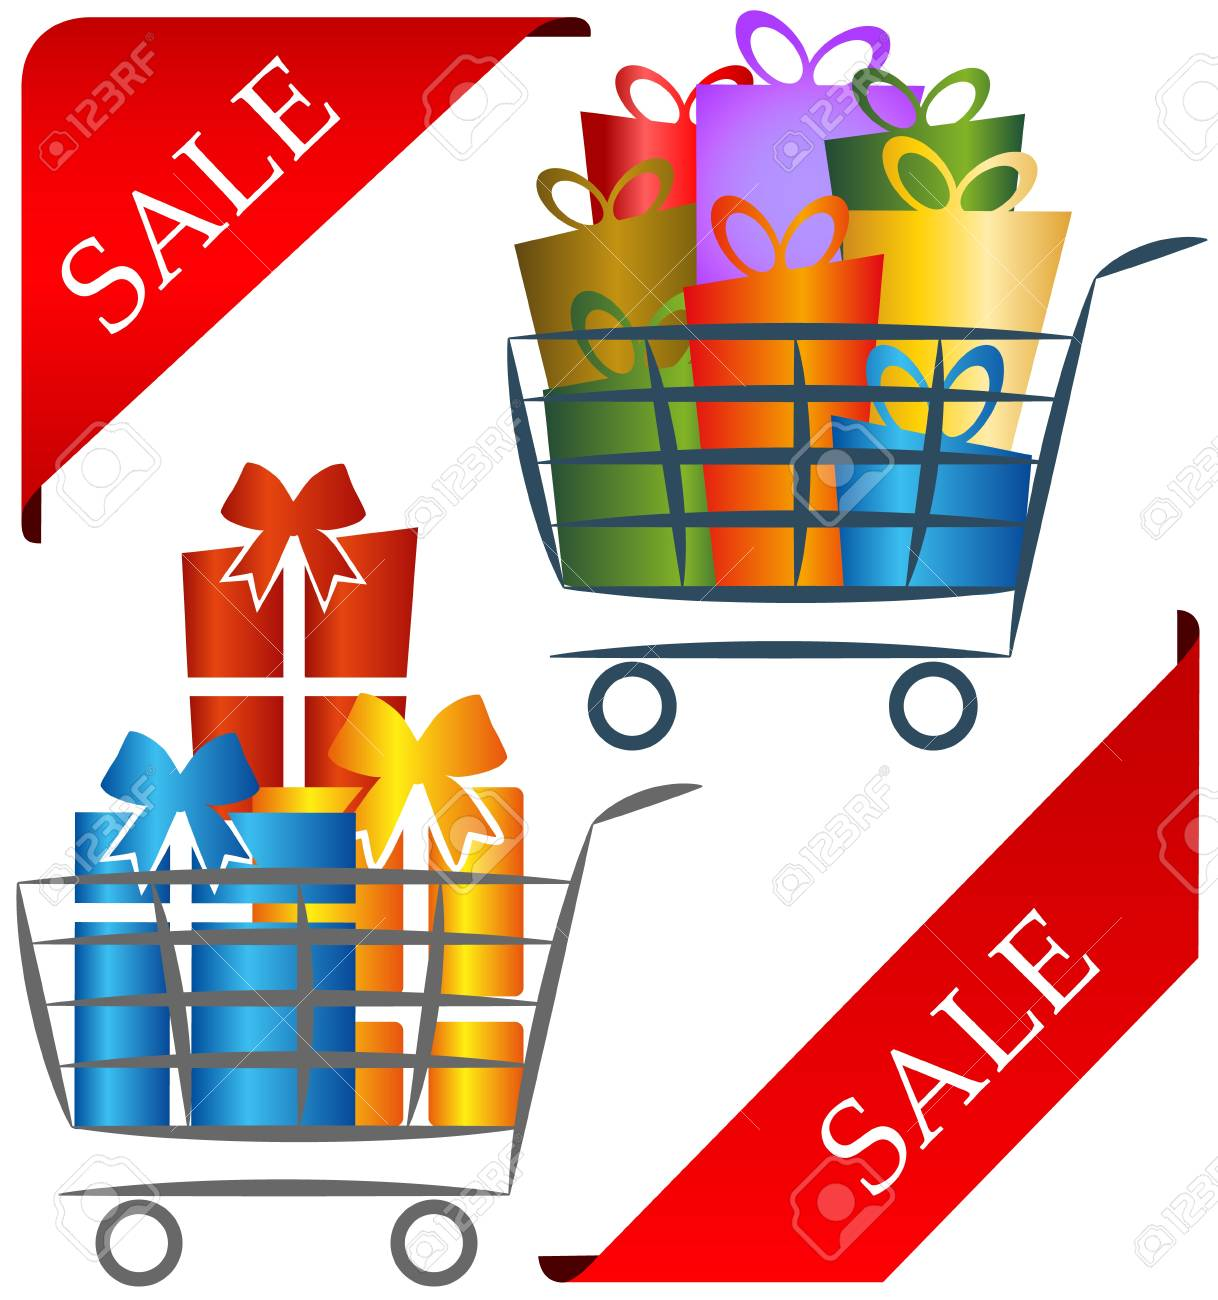 logo for business, shopping and gifts Stock Vector - 16626801